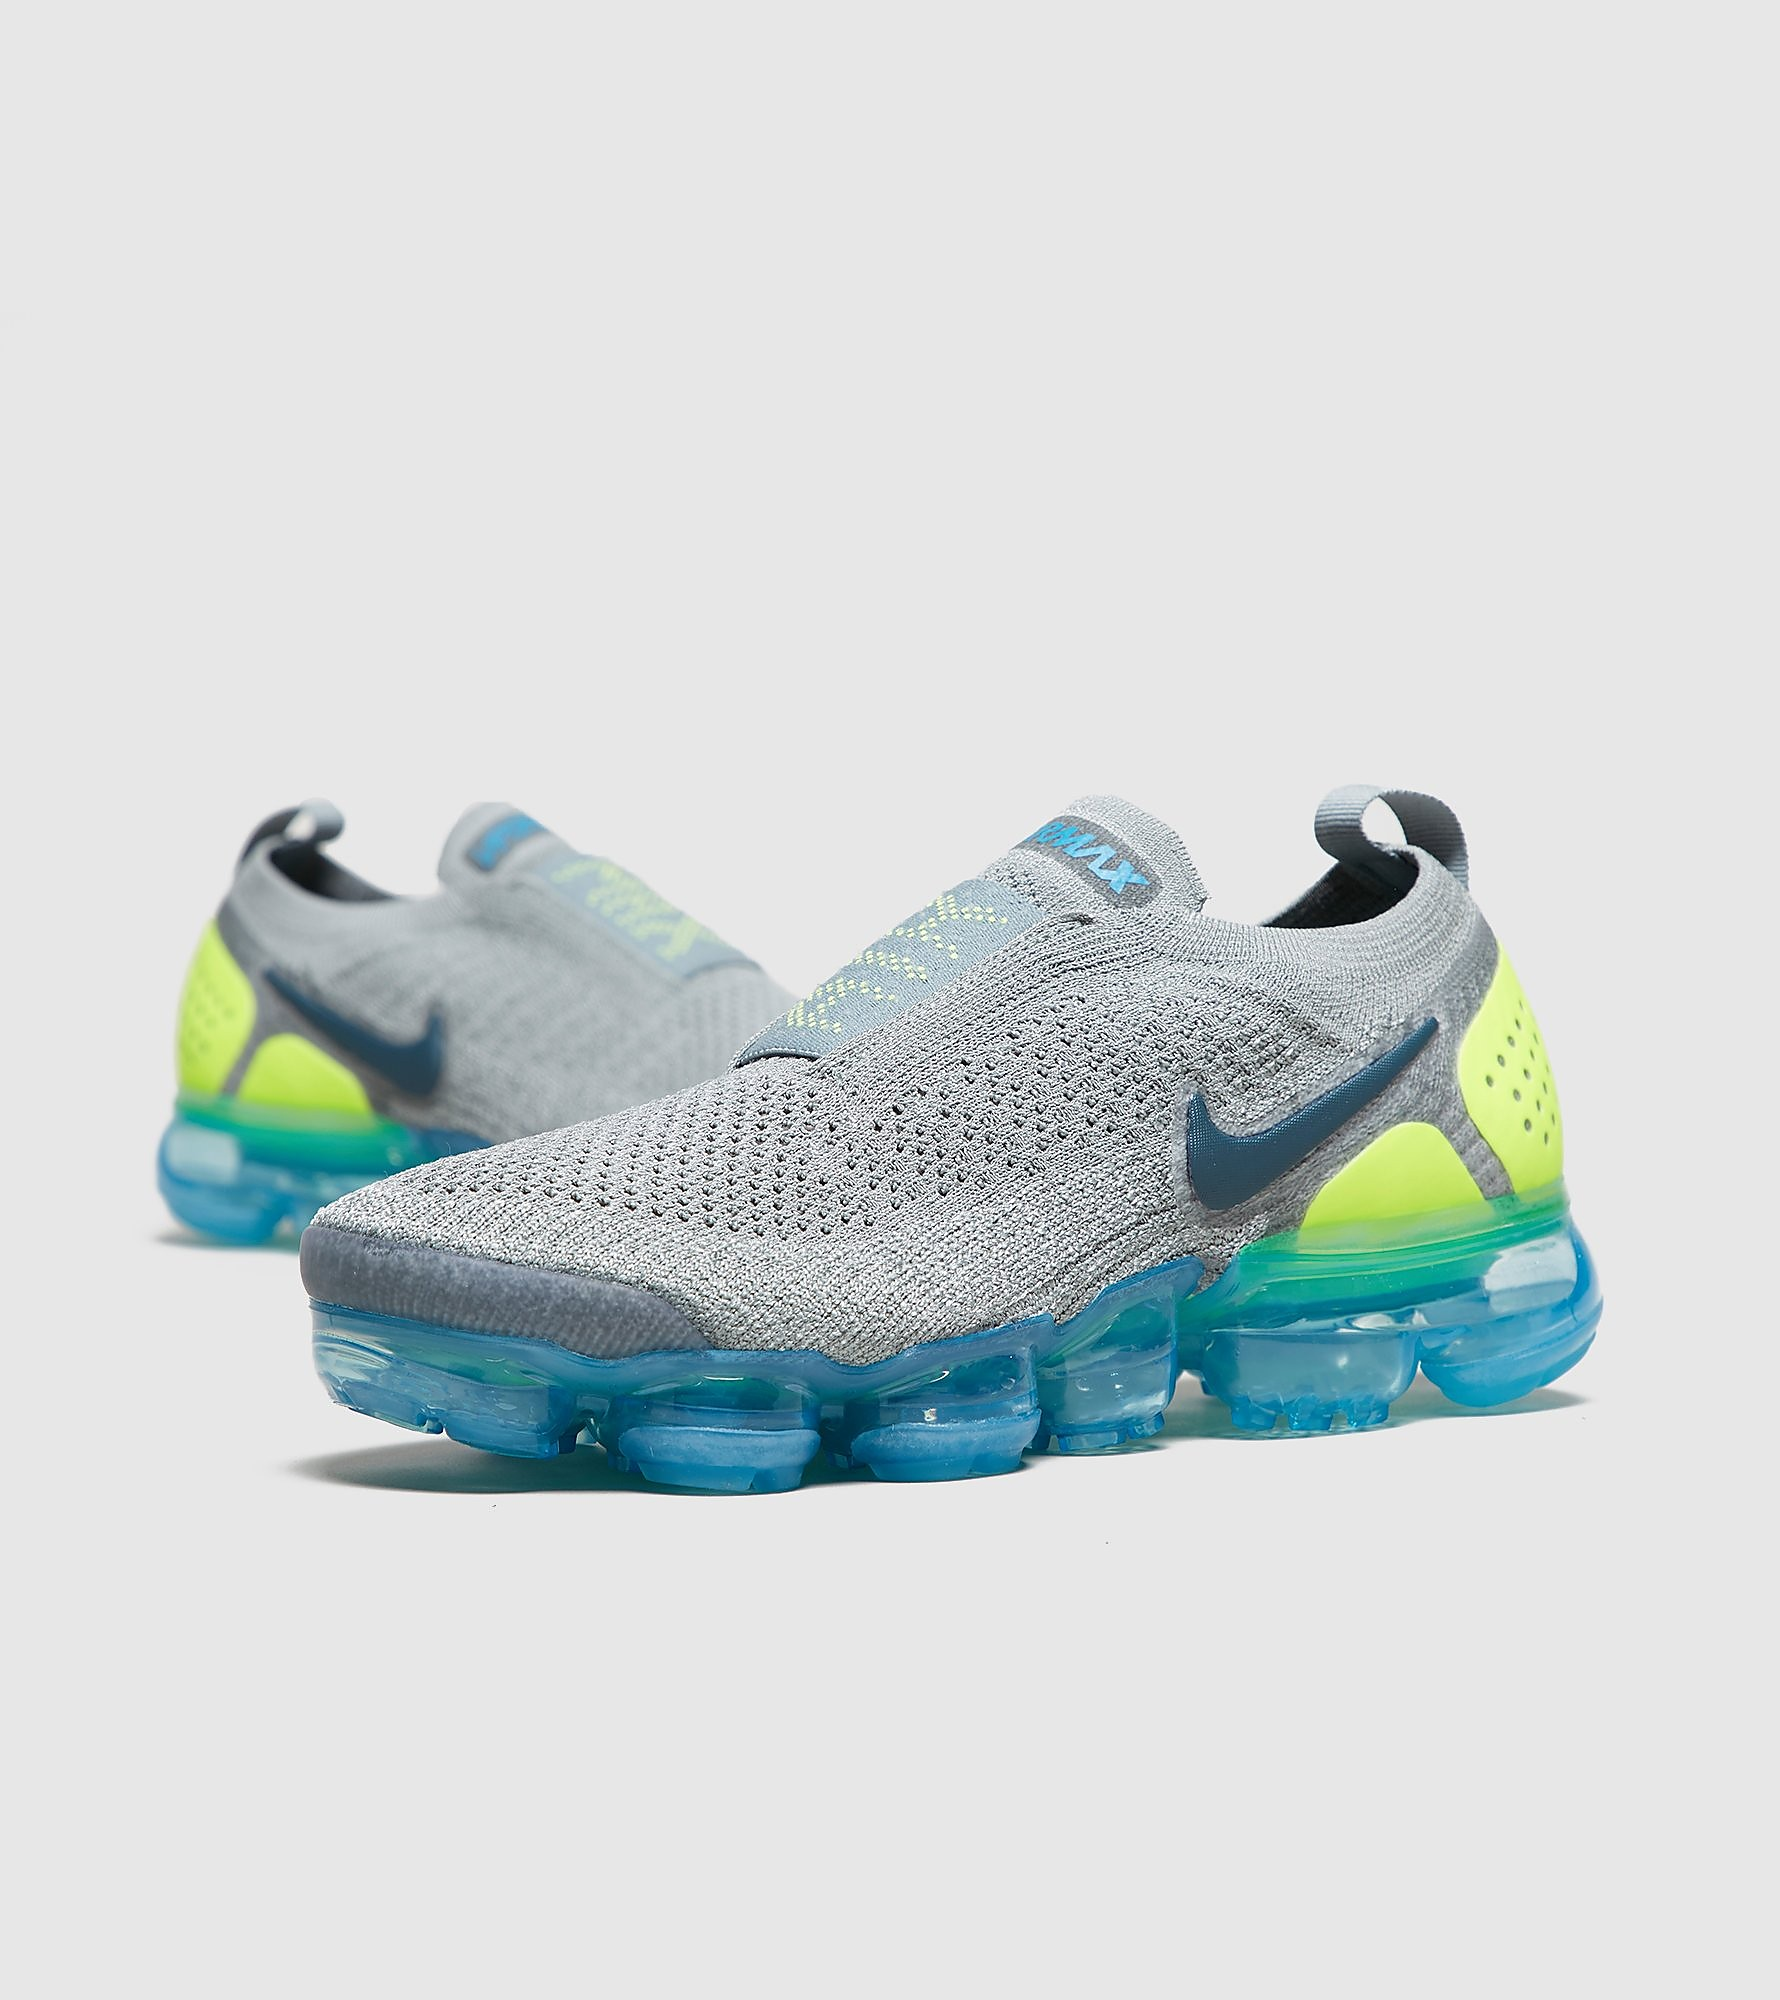 Nike Air VaporMax Moc 2 Women's